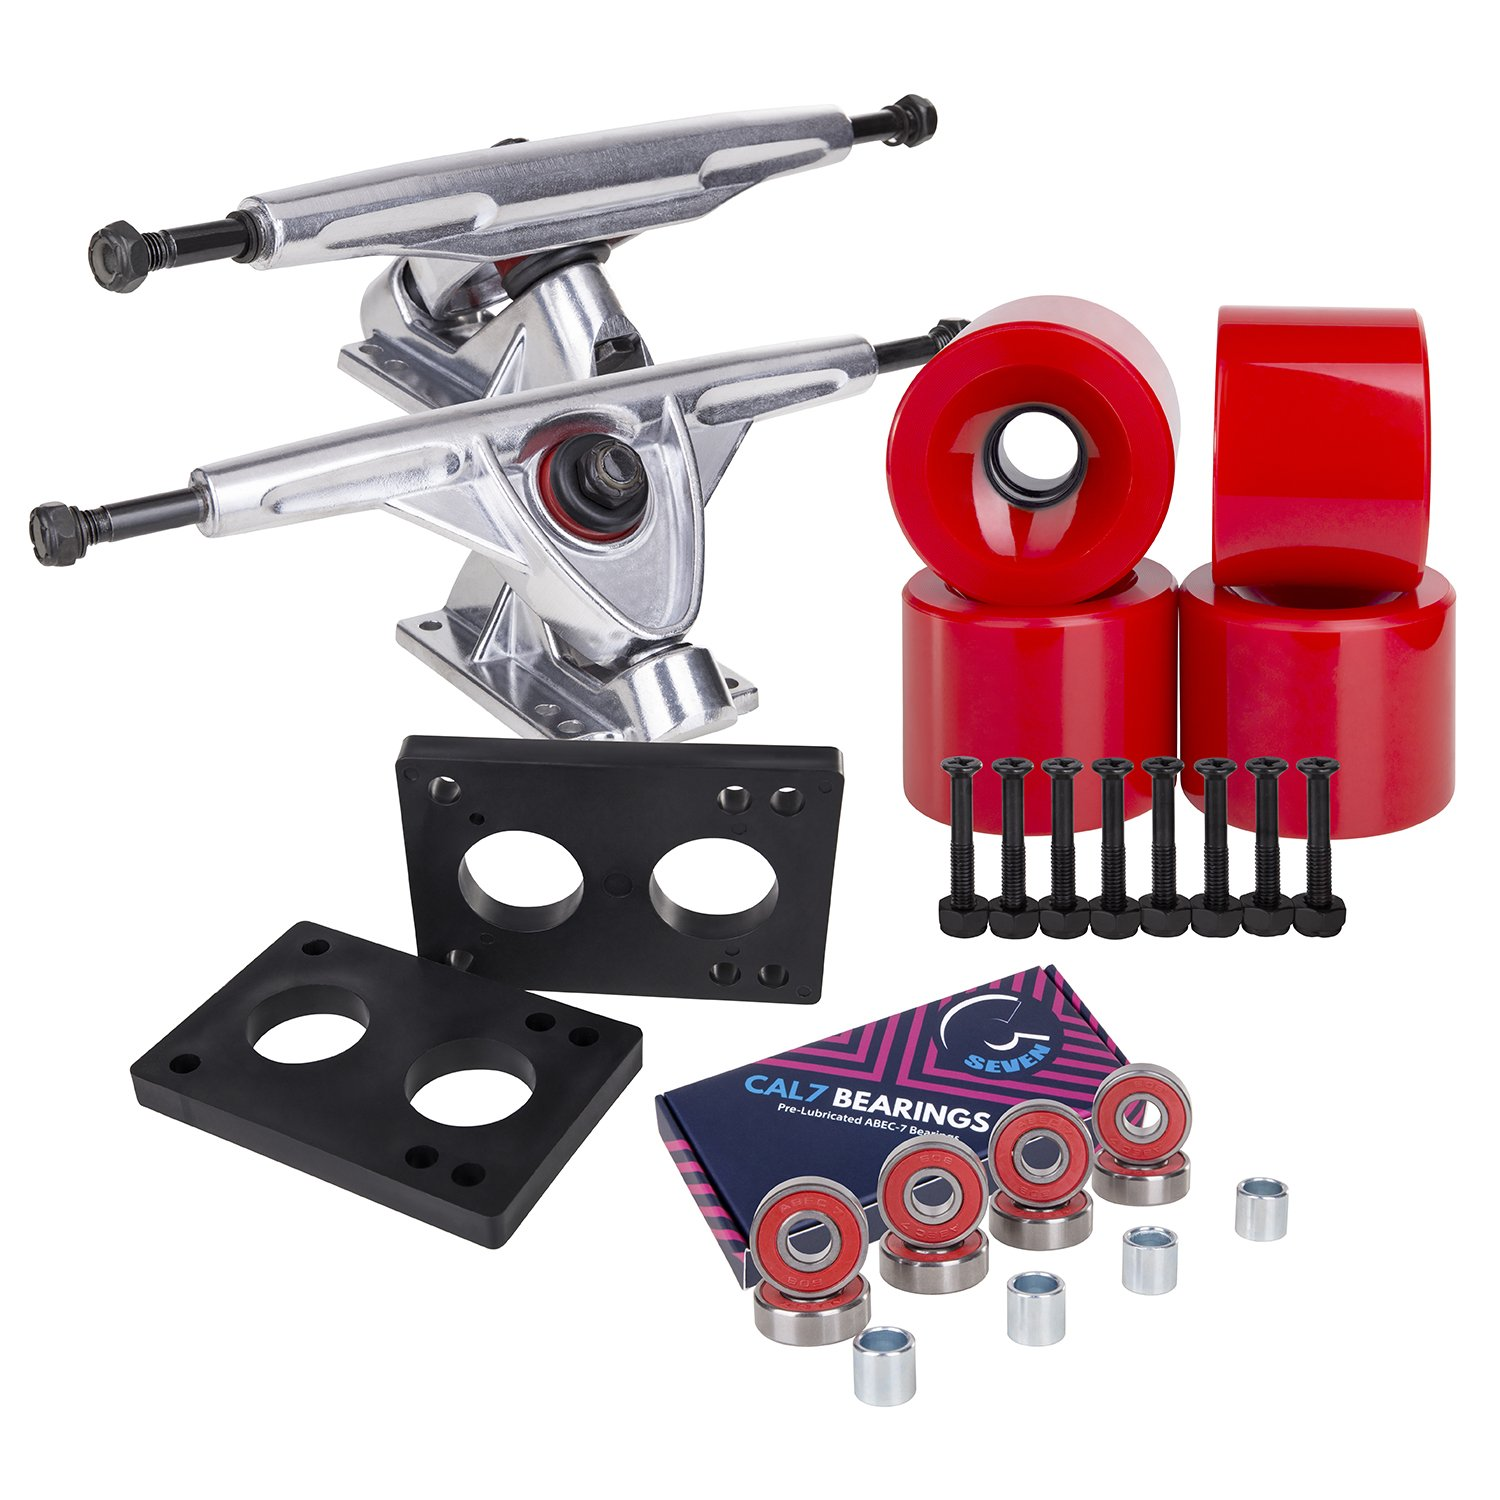 Cal 7 Longboard Skateboard Combo Package with 70mm Wheels & 180mm Lightweight Aluminum Trucks, Bearings Complete Set & Steel Hardware (Silver Truck + Solid Red Wheels) by Cal 7